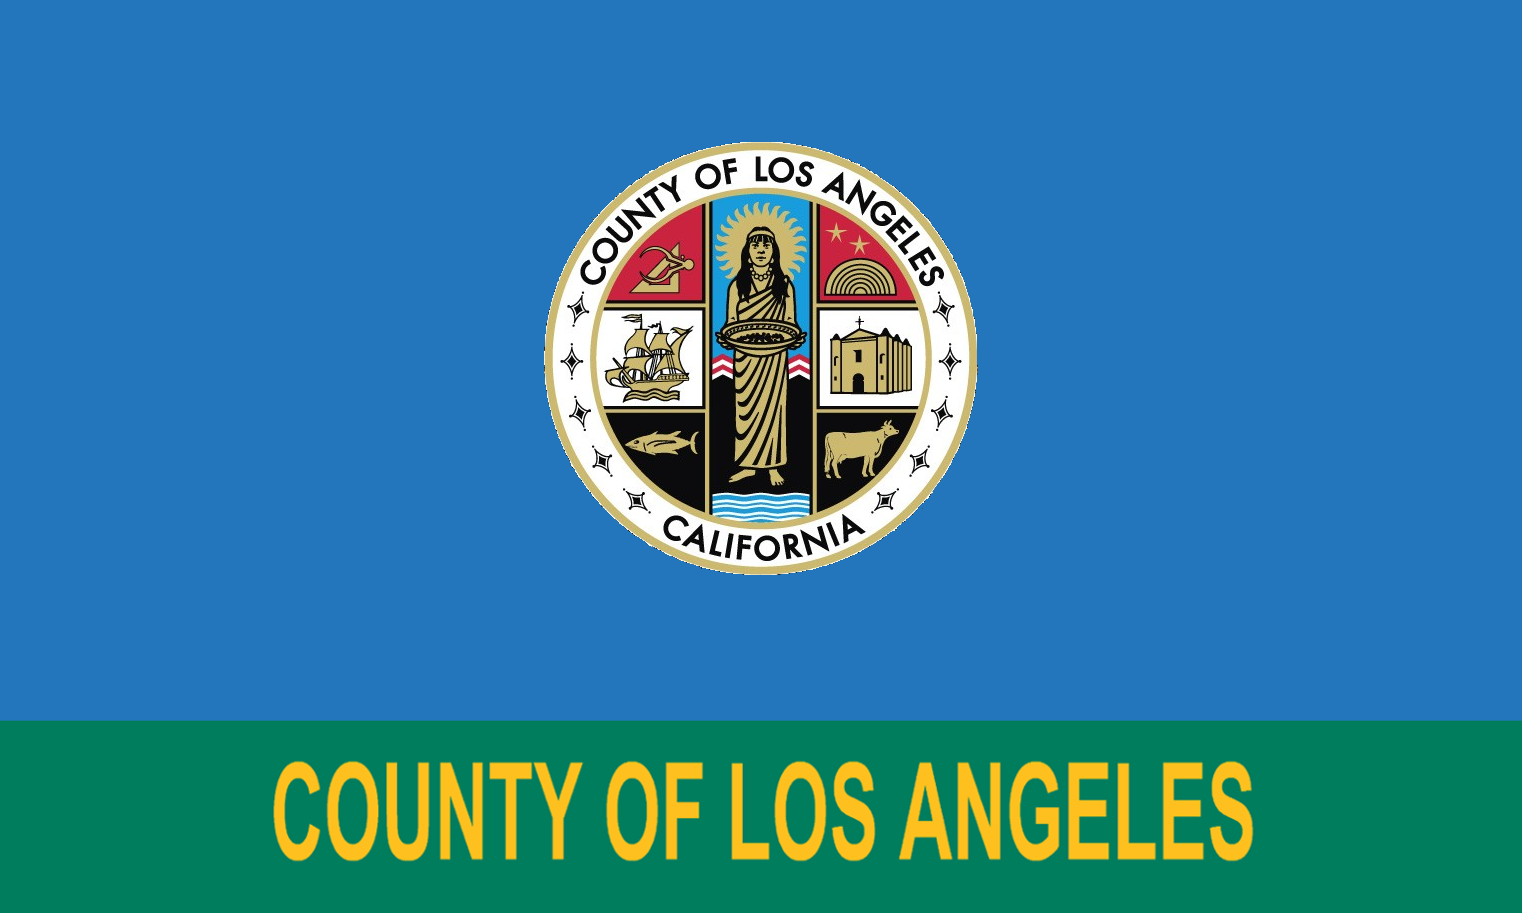 Los Angeles County Flag